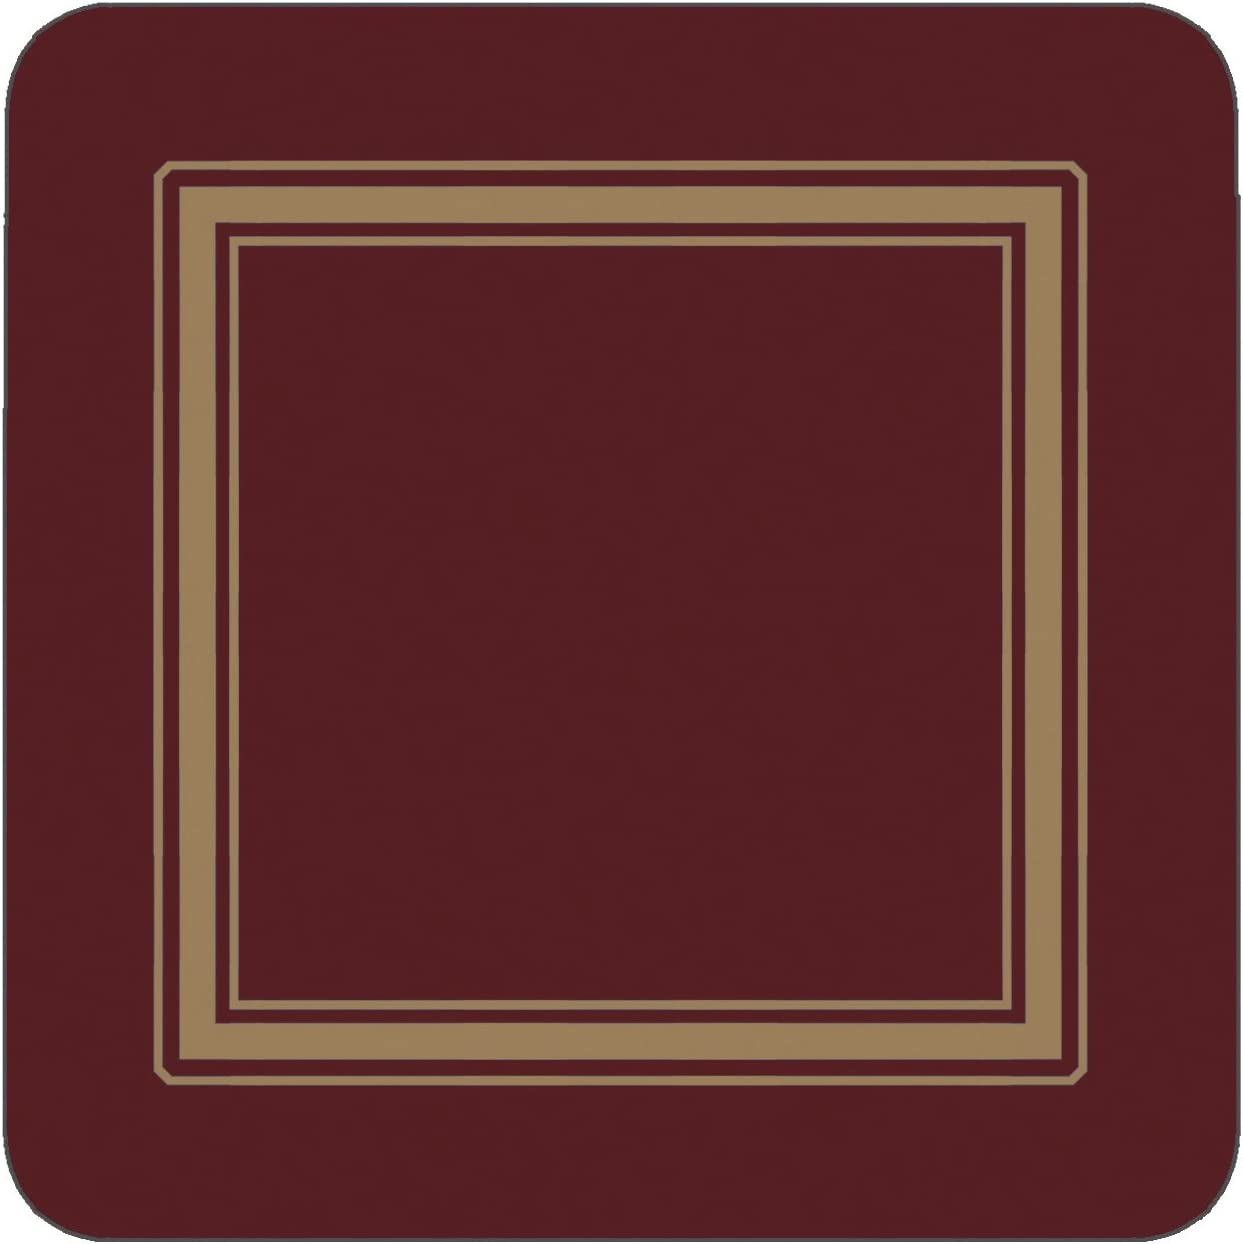 Pimpernel Great interest Bombing free shipping Classic Burgundy Coasters 6 - Set of